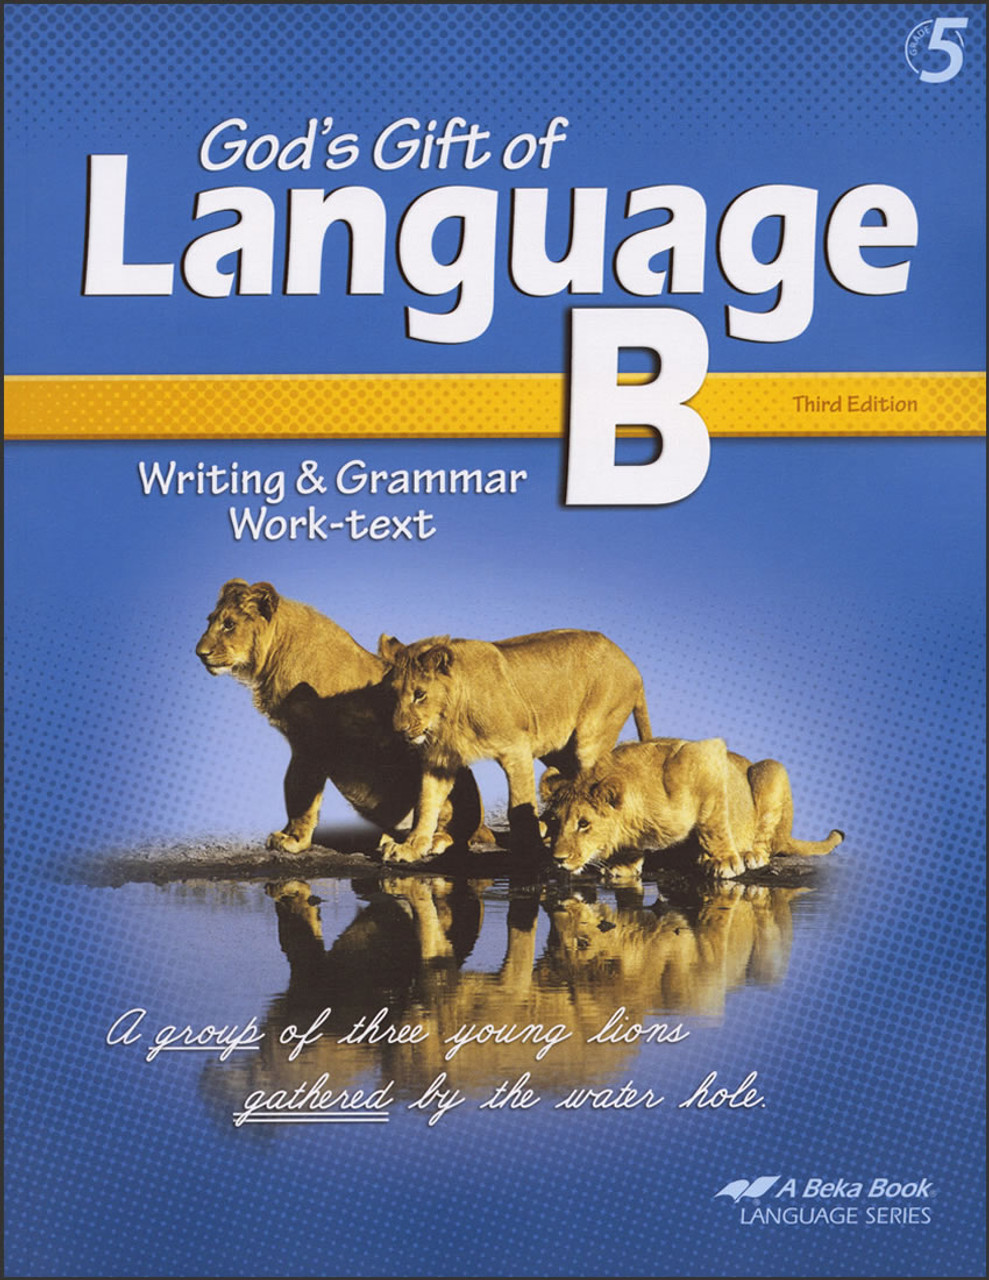 God's Gift of Language B, 3rd edition